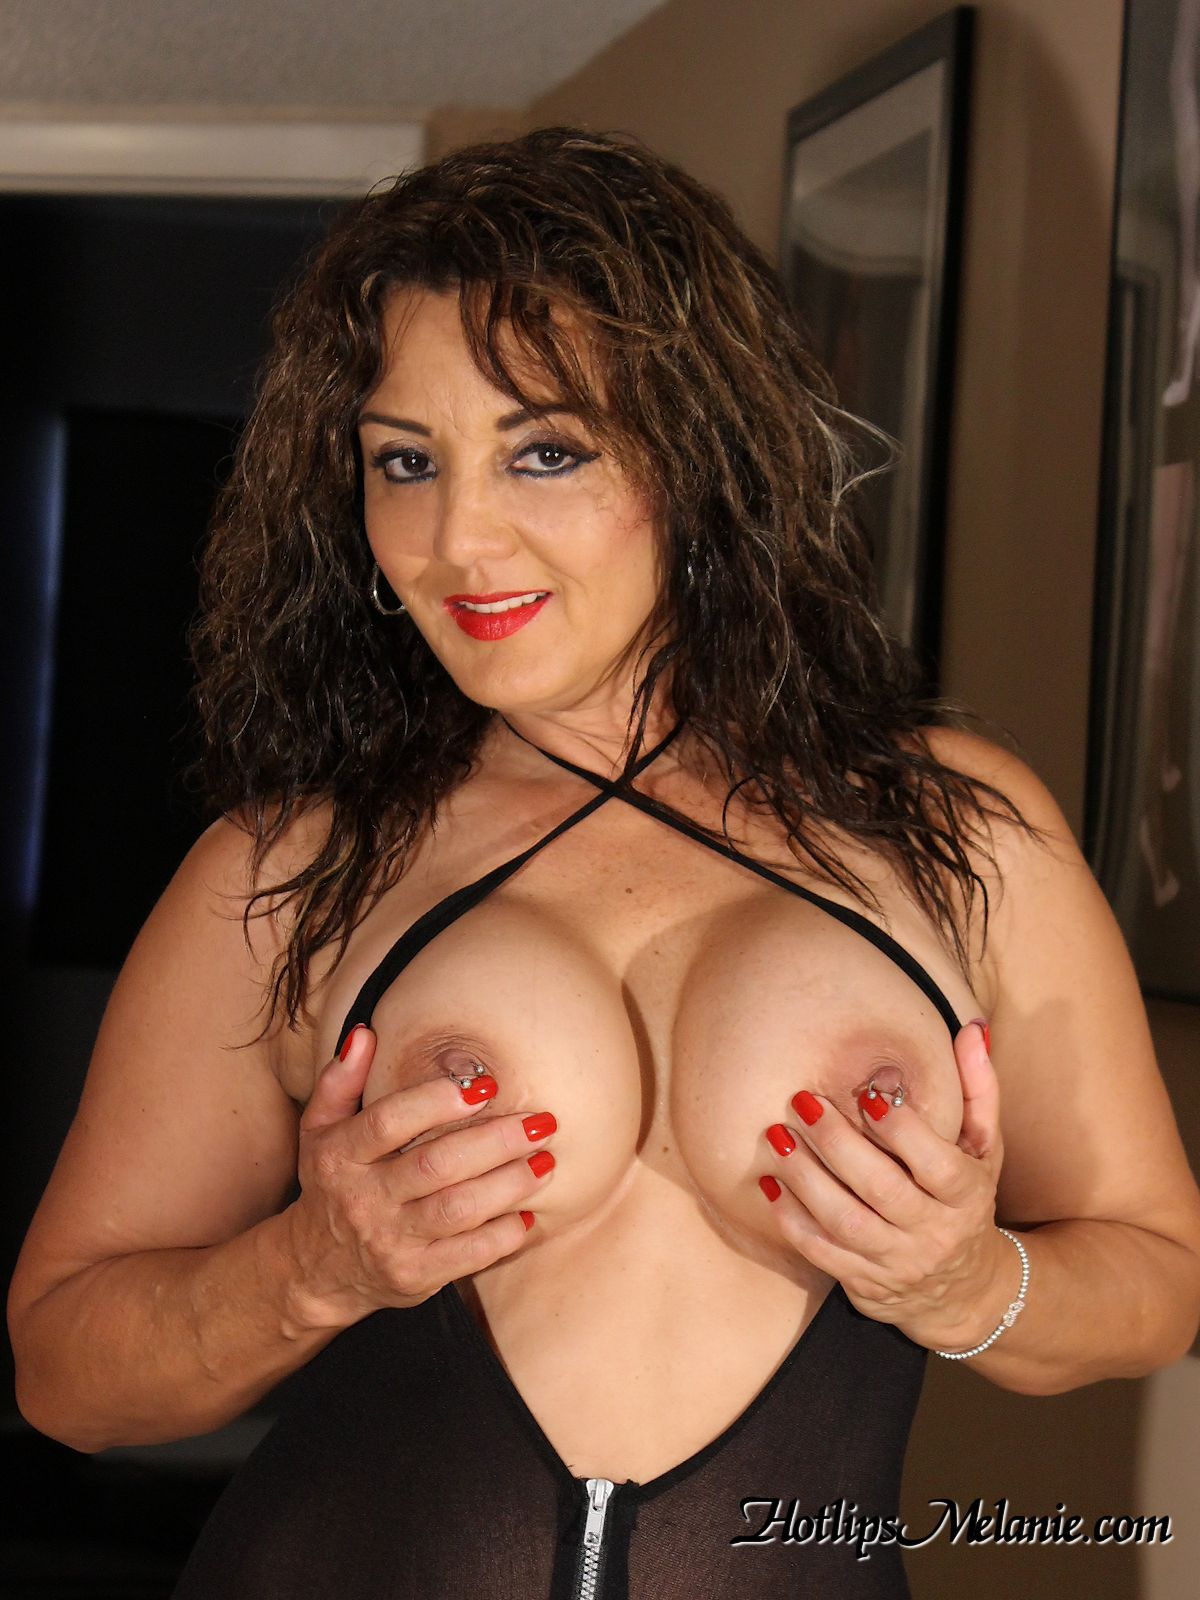 Big tit Latina hand bra with pierced nipples exposed